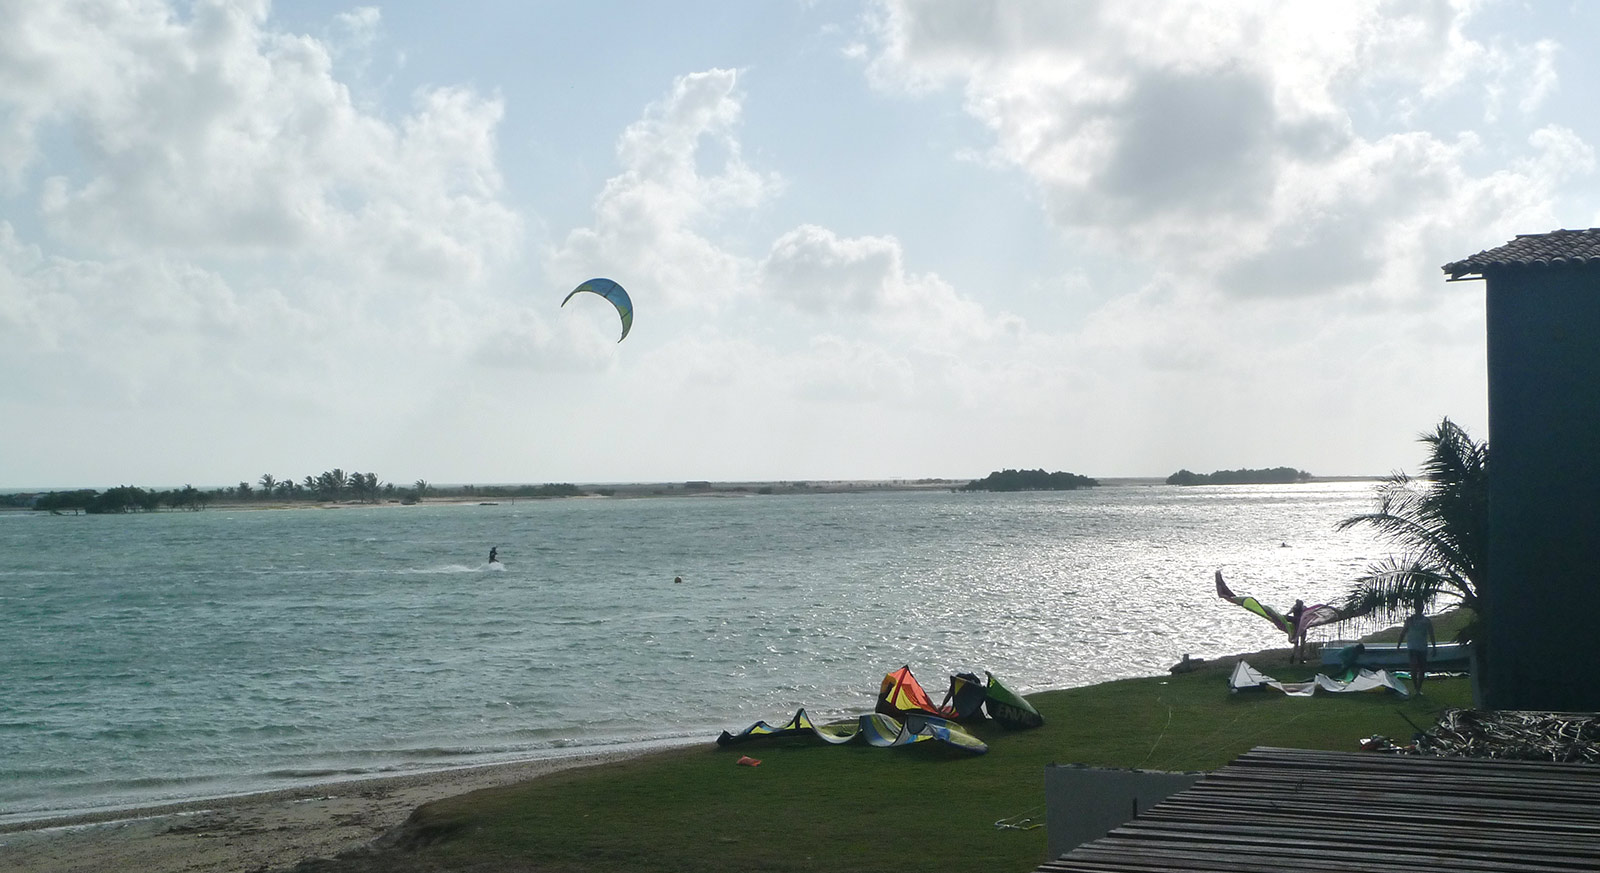 Kitesurf accommodation at Ilha do Guajiru